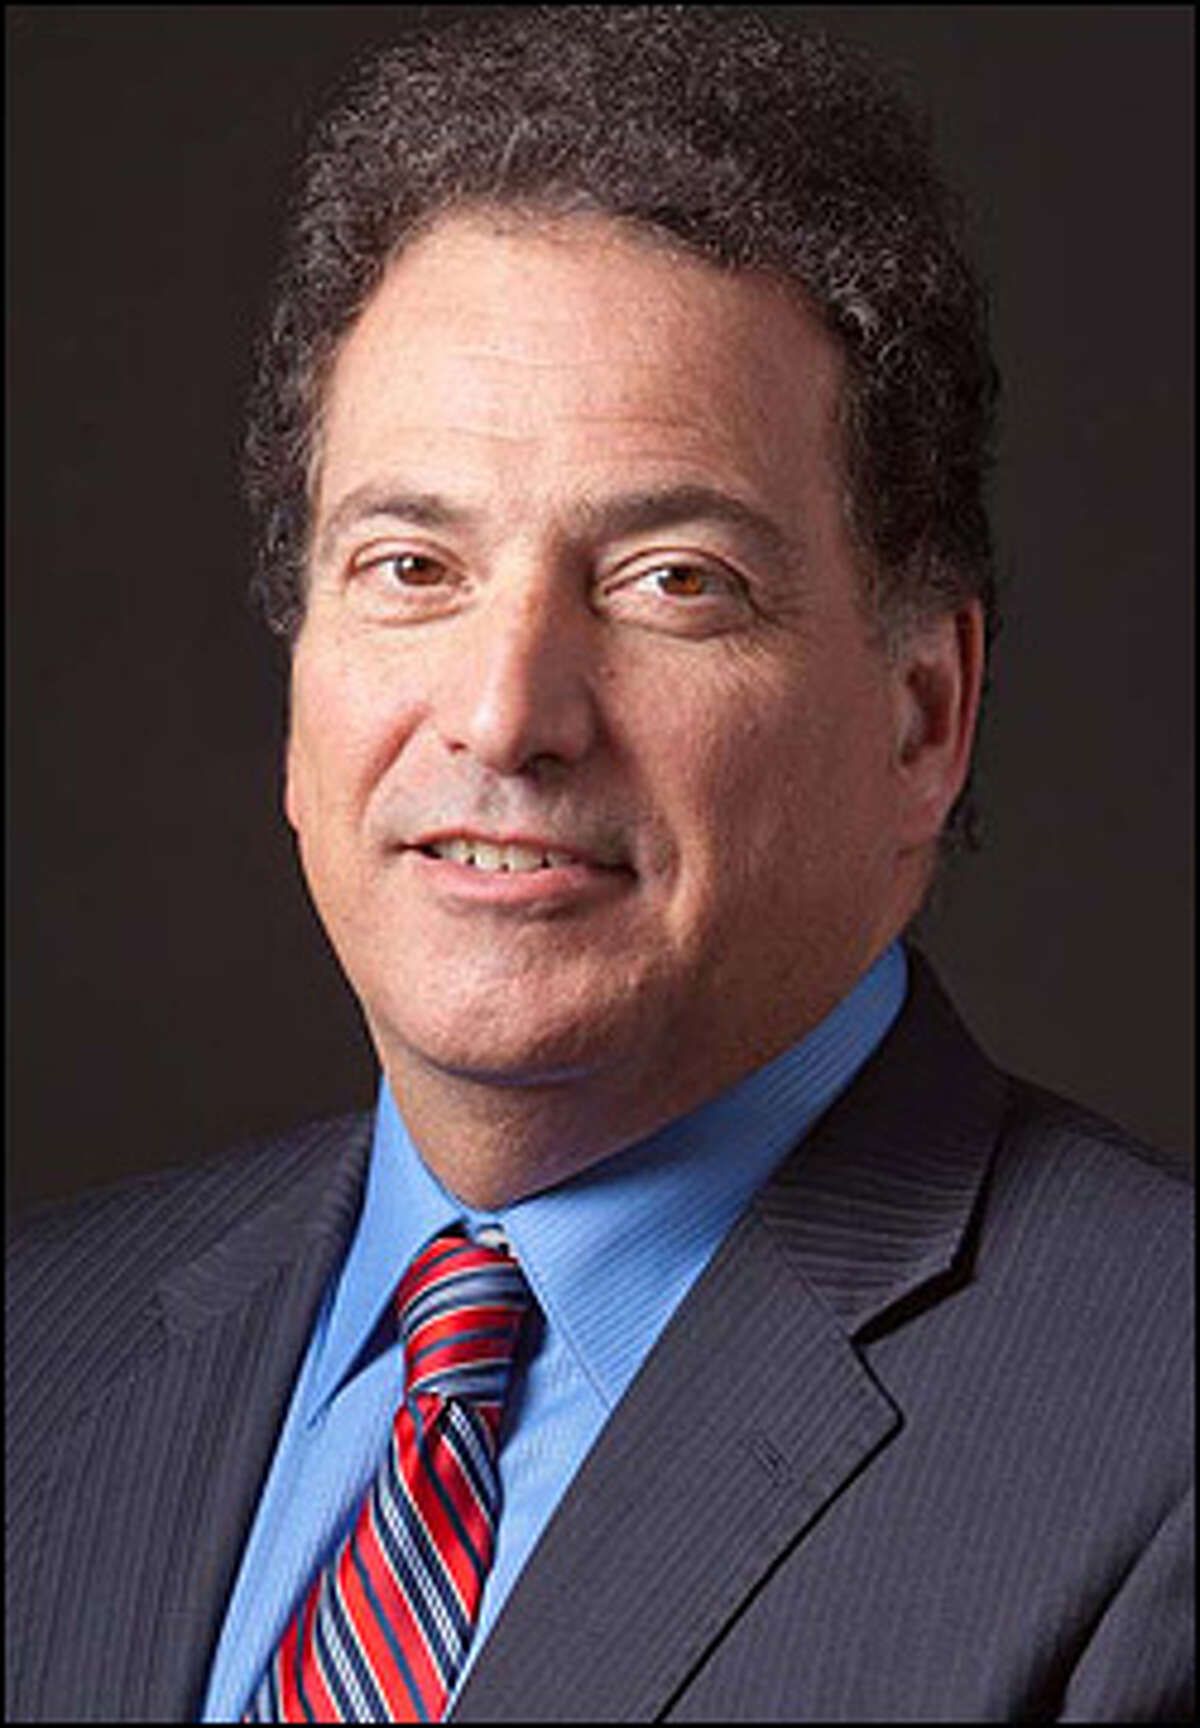 Richard D'Aquila, president Yale-New Haven Hospital; executive vice president, Yale New Haven Health Salary: $1,800,904 Benefits: $447,095 Total:$2,247,999